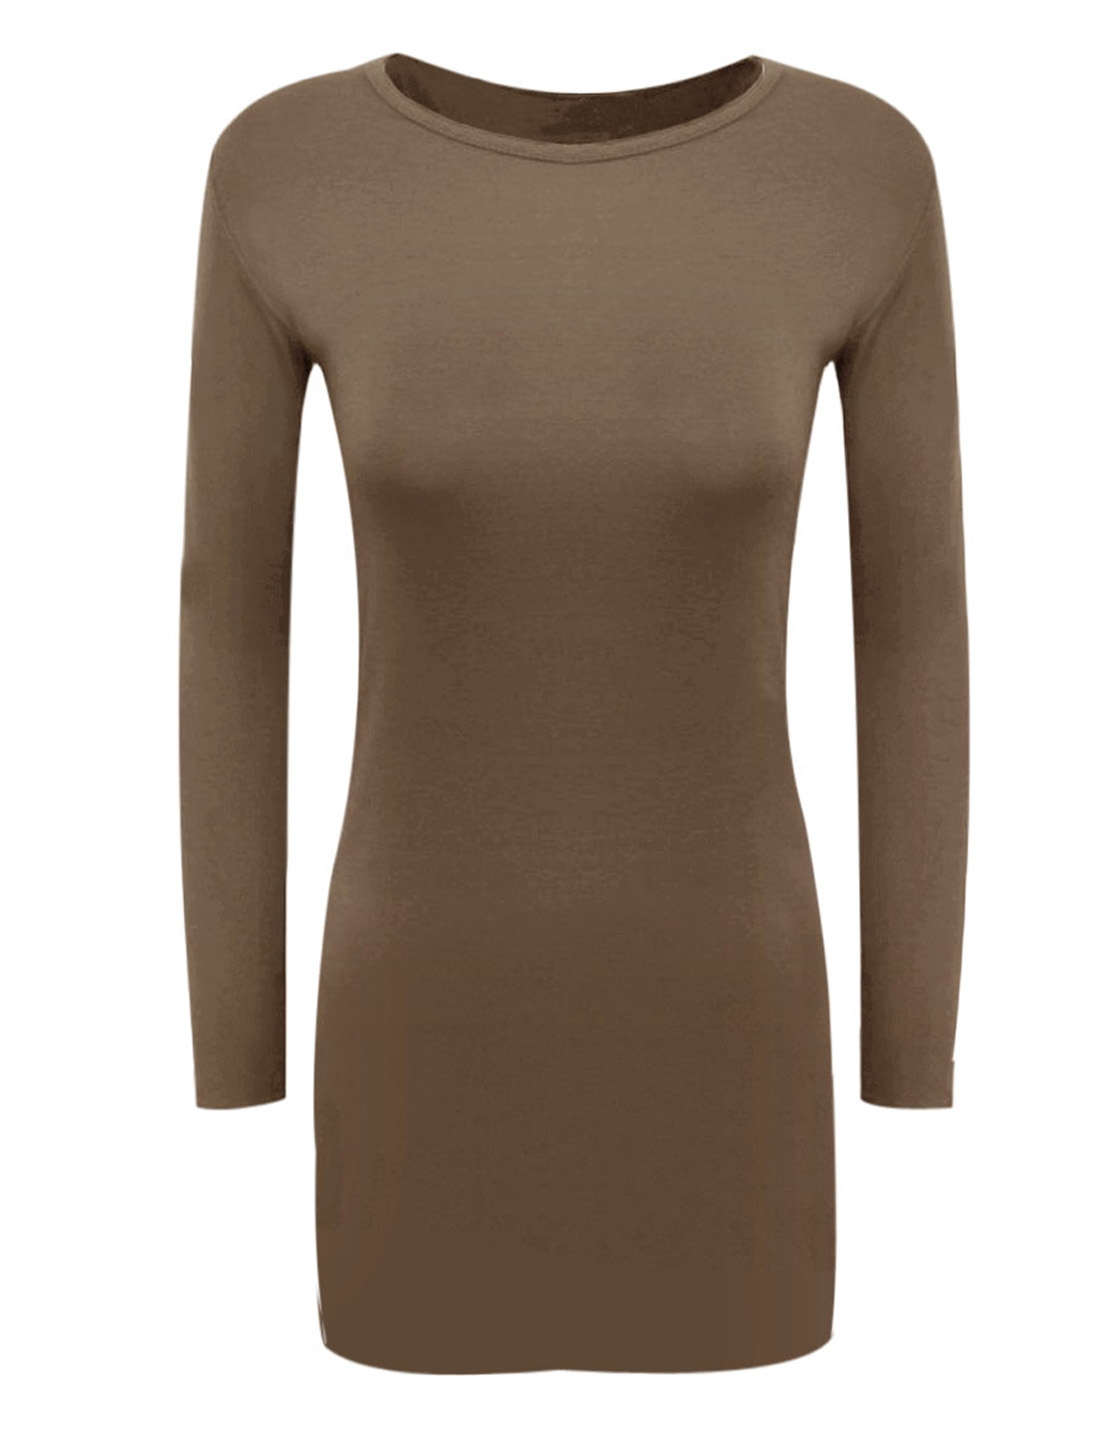 Lady Round Neck Long Sleeves Unlining NEW Sheath Dress Brown M